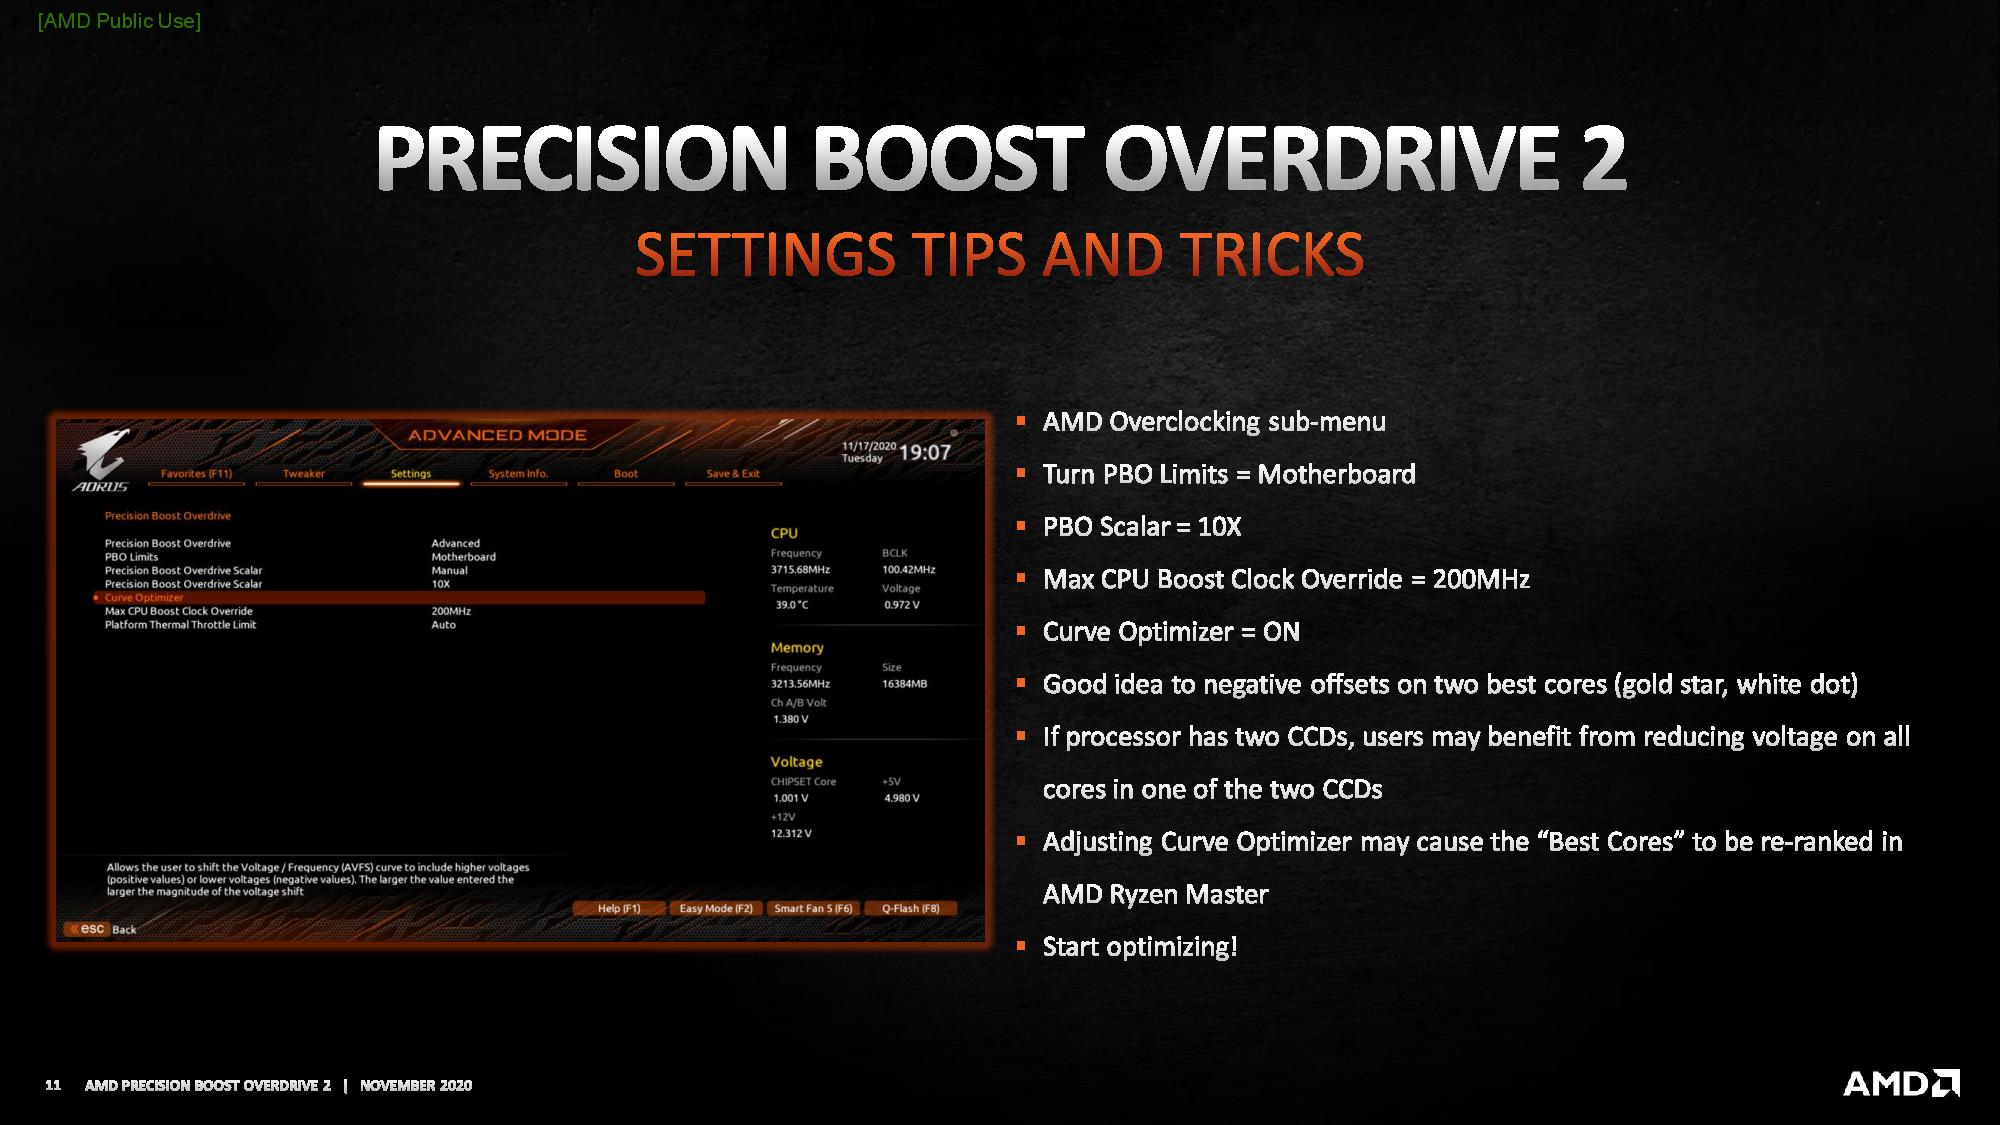 https://images.anandtech.com/doci/16267/AMD%20Ryzen%205000%20Series%20-%20Precision%20Boost%20Overdrive%202-page-011.jpg